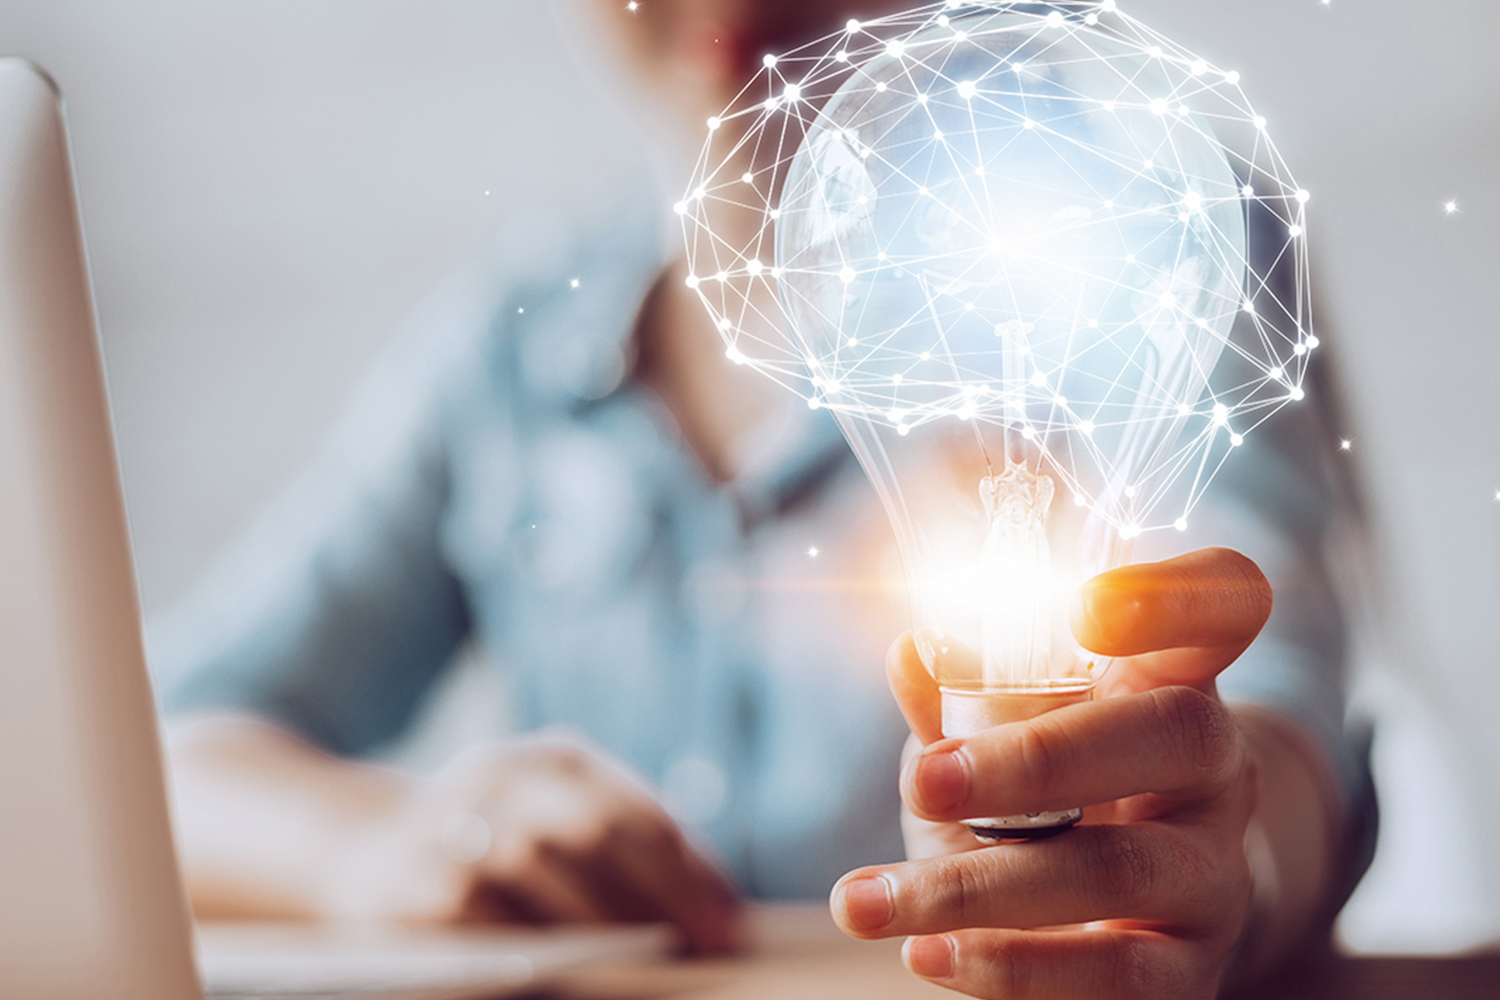 Publish your innovation call on the Open Innovation Network